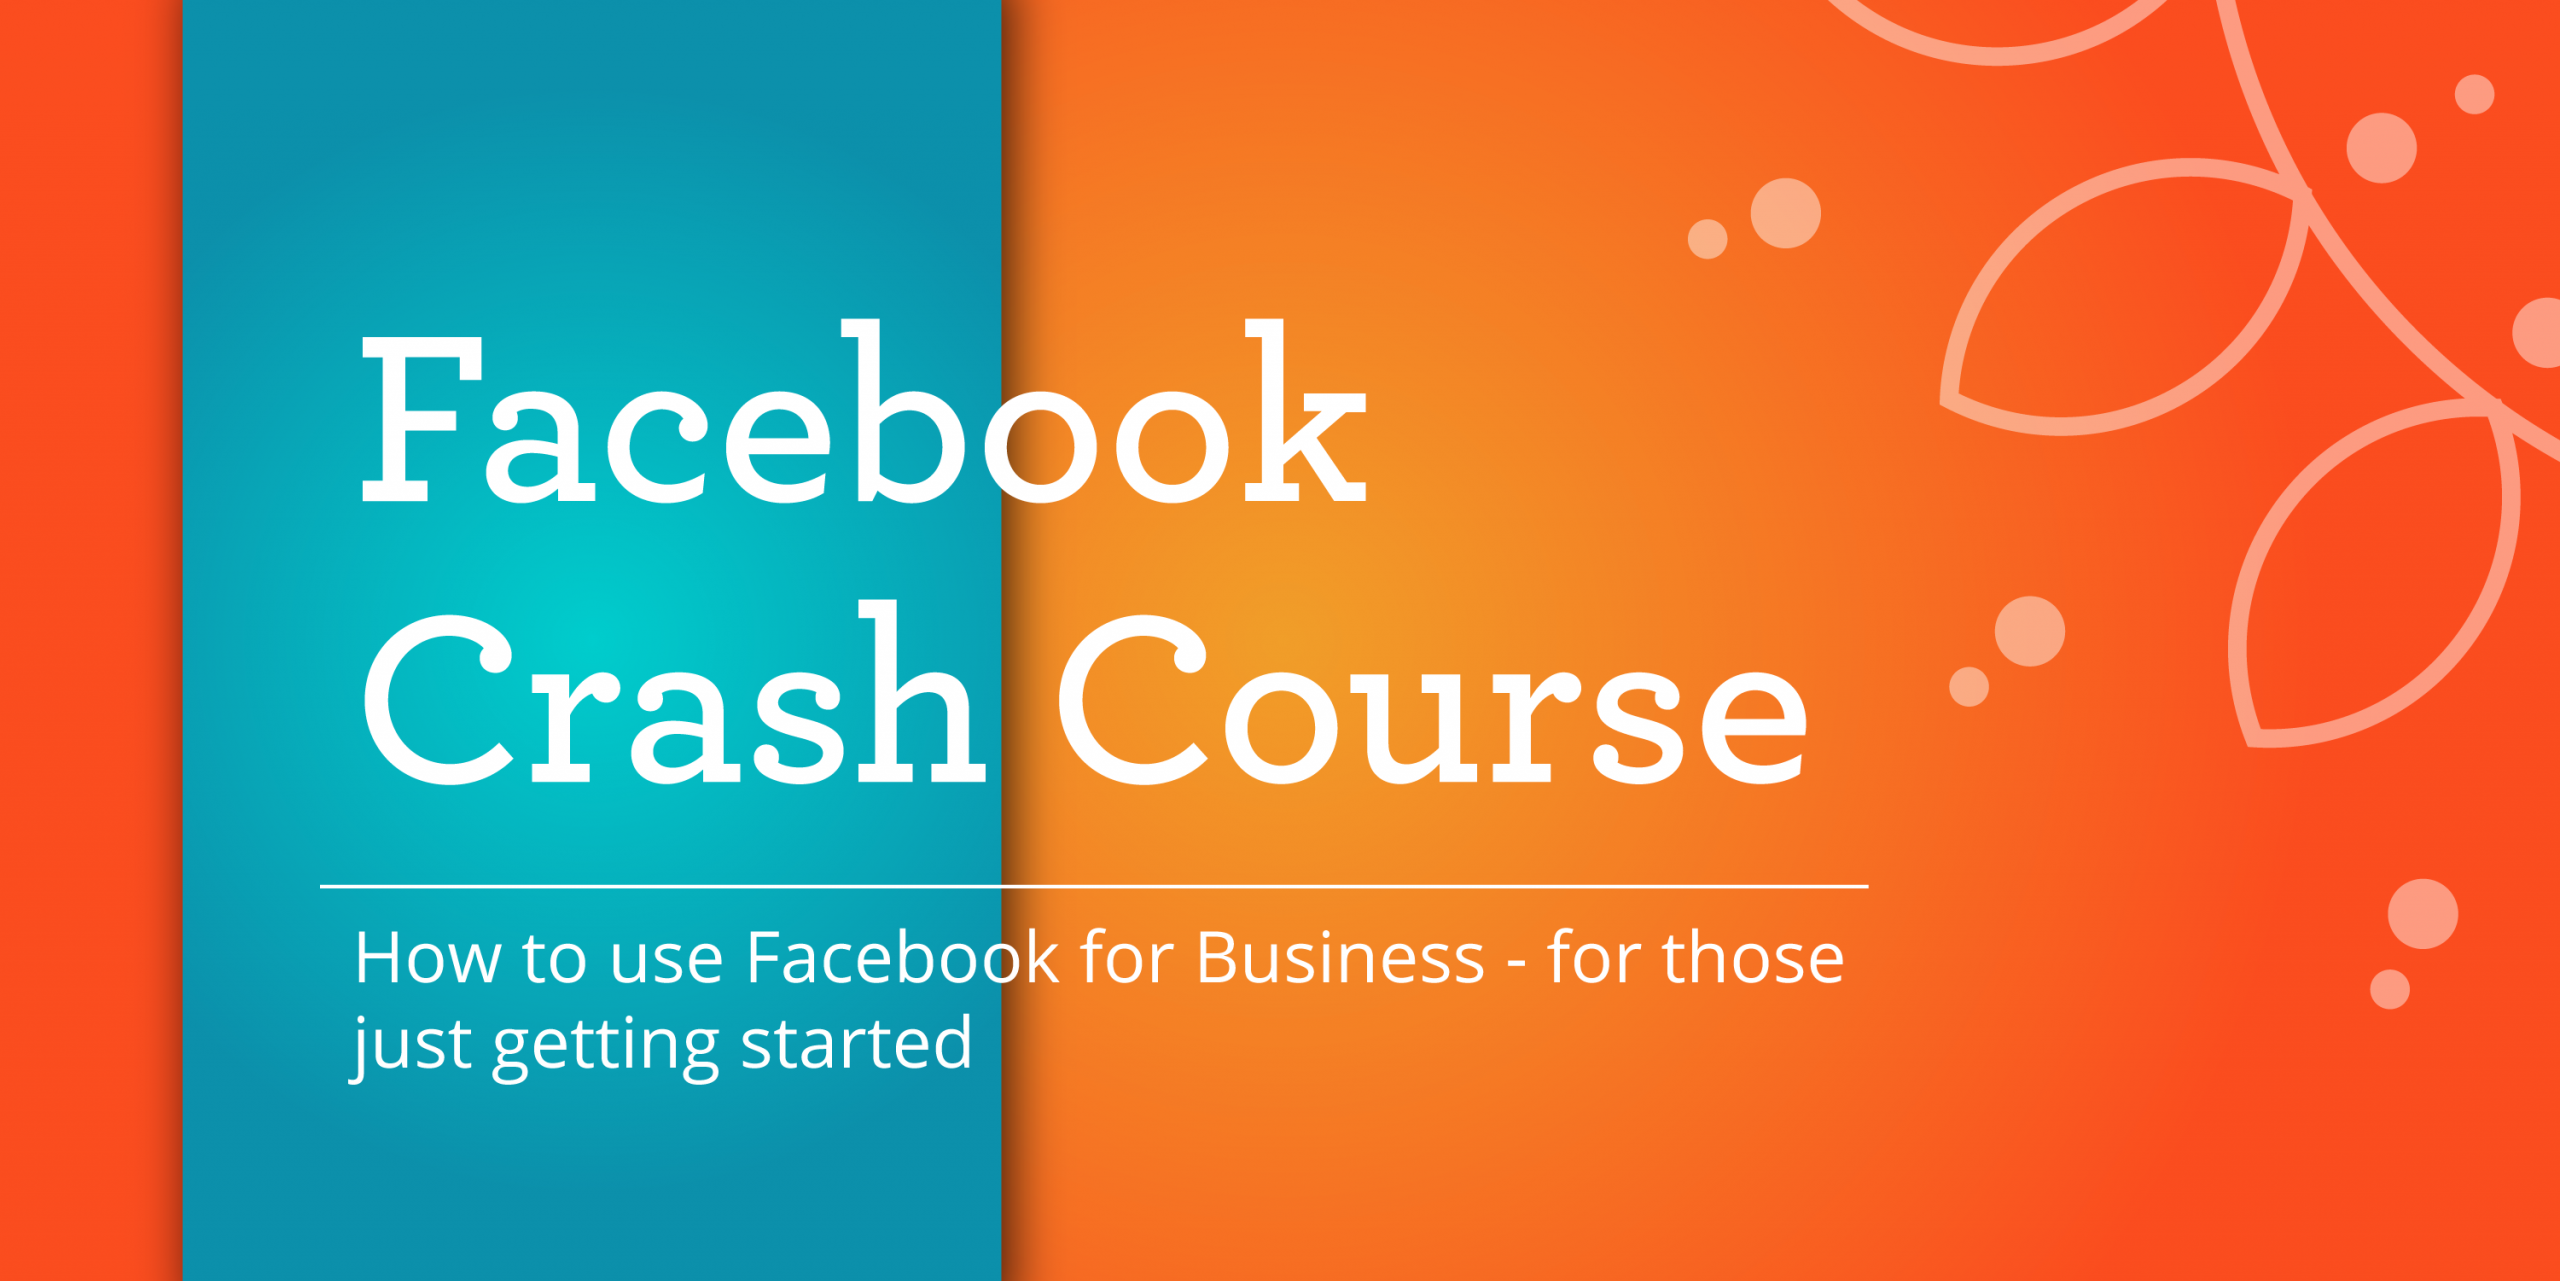 Web banner design for upcoming Facebook Crash Course by The Online Fix